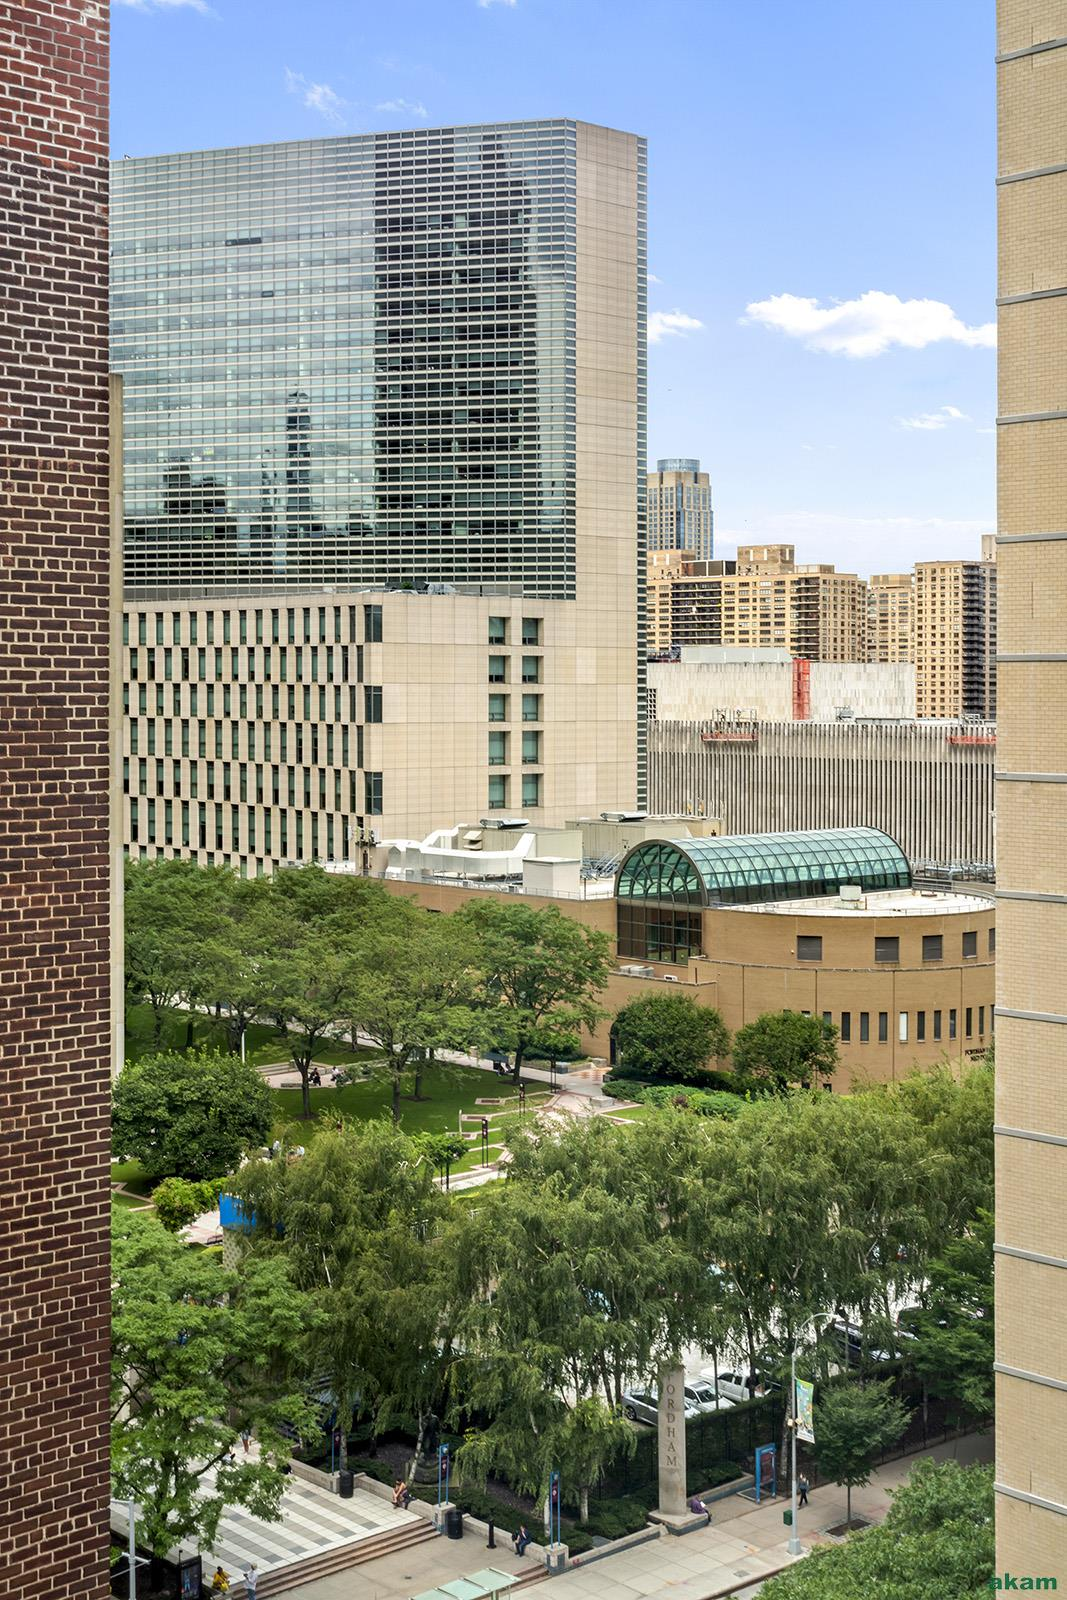 Apartment for sale at 30 West 60th Street, Apt 14-T